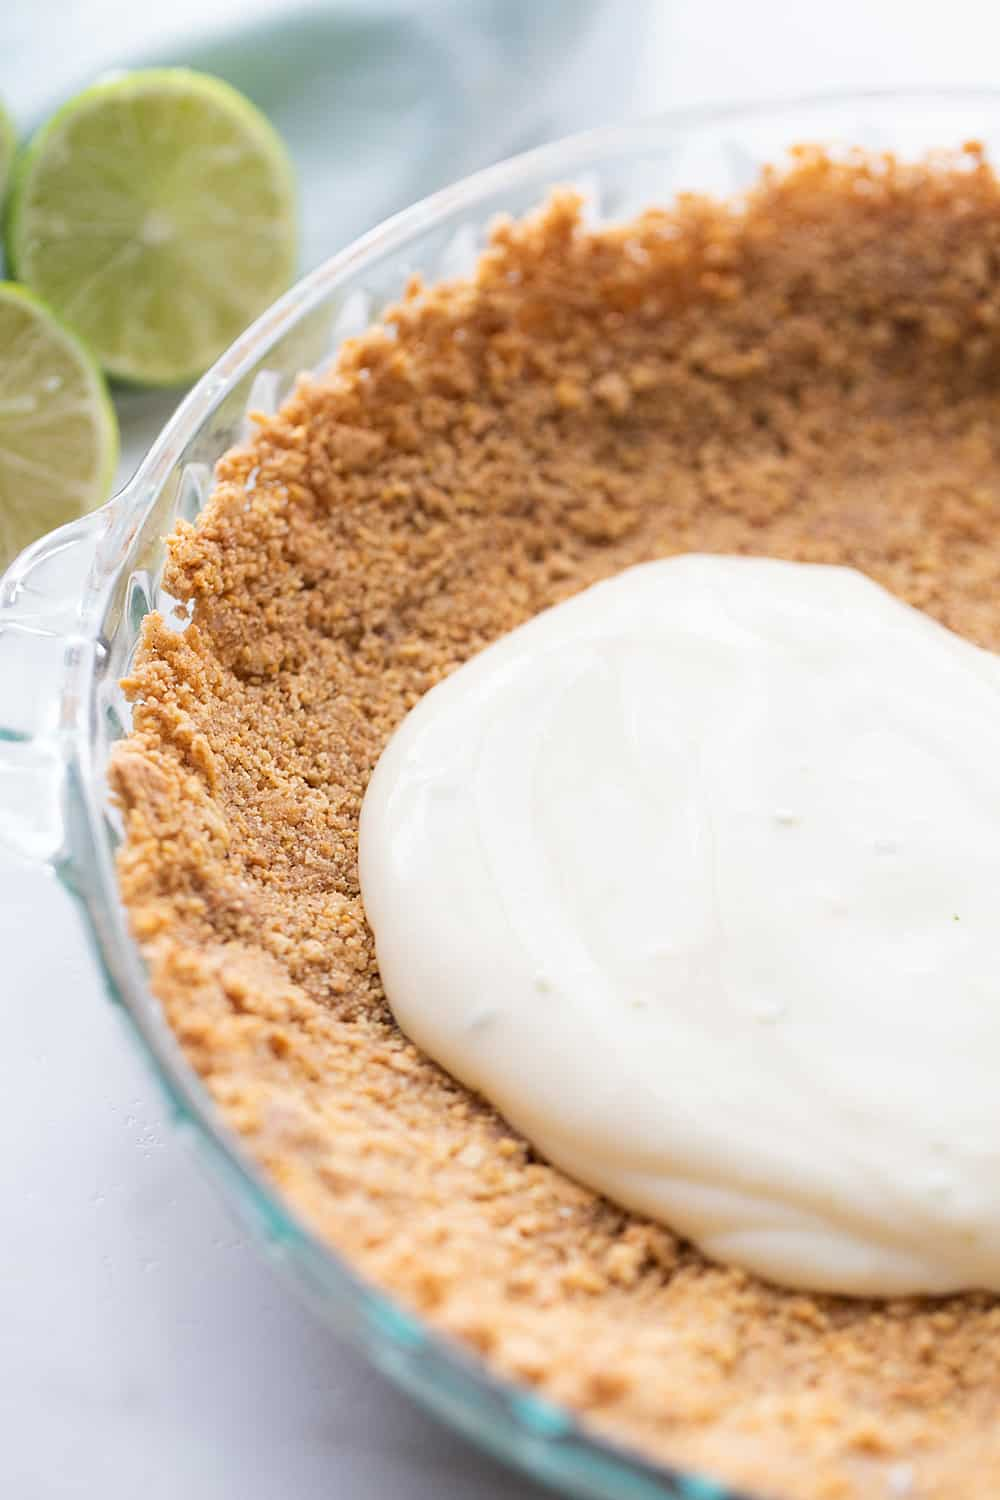 Easy Key Lime Pie with Homemade Whipped Cream - This easy key lime pie calls for a homemade graham cracker crust and the easiest pie filling ever. Top it with homemade whipped cream and it's always a hit! #keylime #keylimepie #whippedcream #dessert #baking #pie #lime #halfscratched